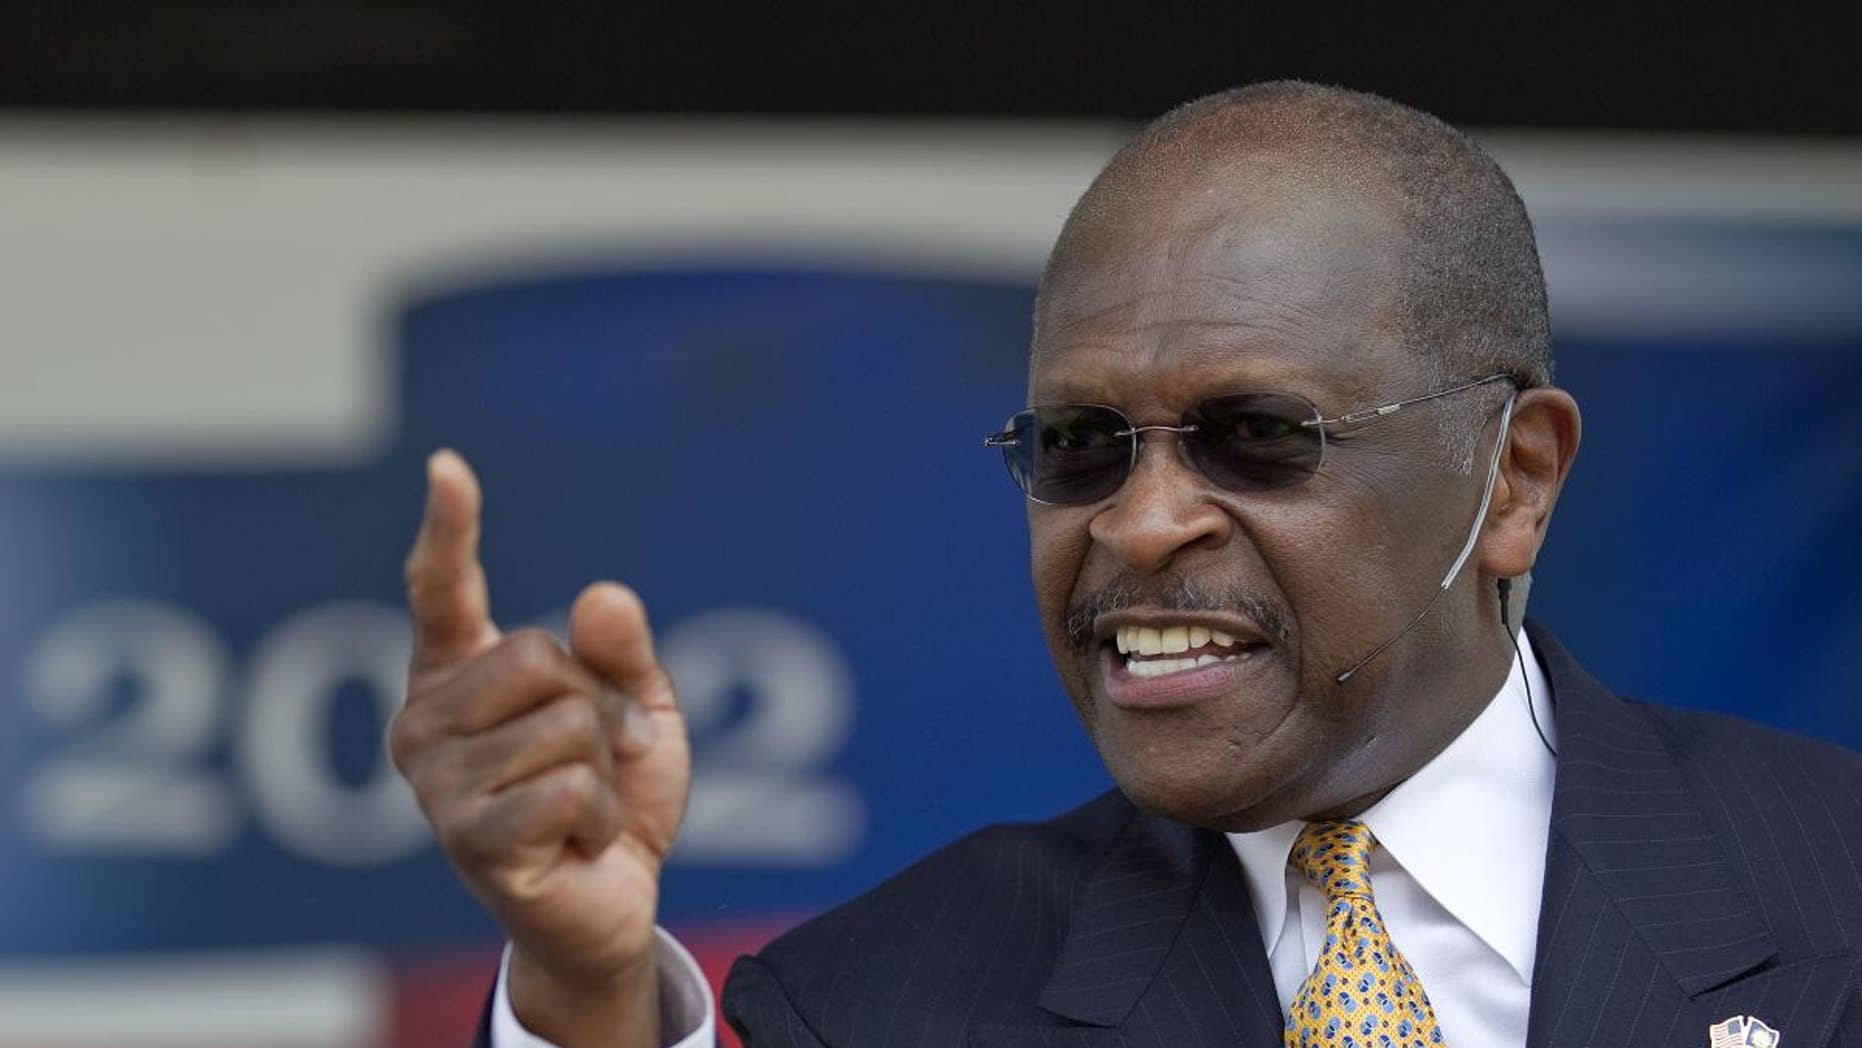 Radio host and former Godfather's Pizza CEO Herman Cain announces his bid for the 2012 GOP presidential nomination May 21. (AP Photo)